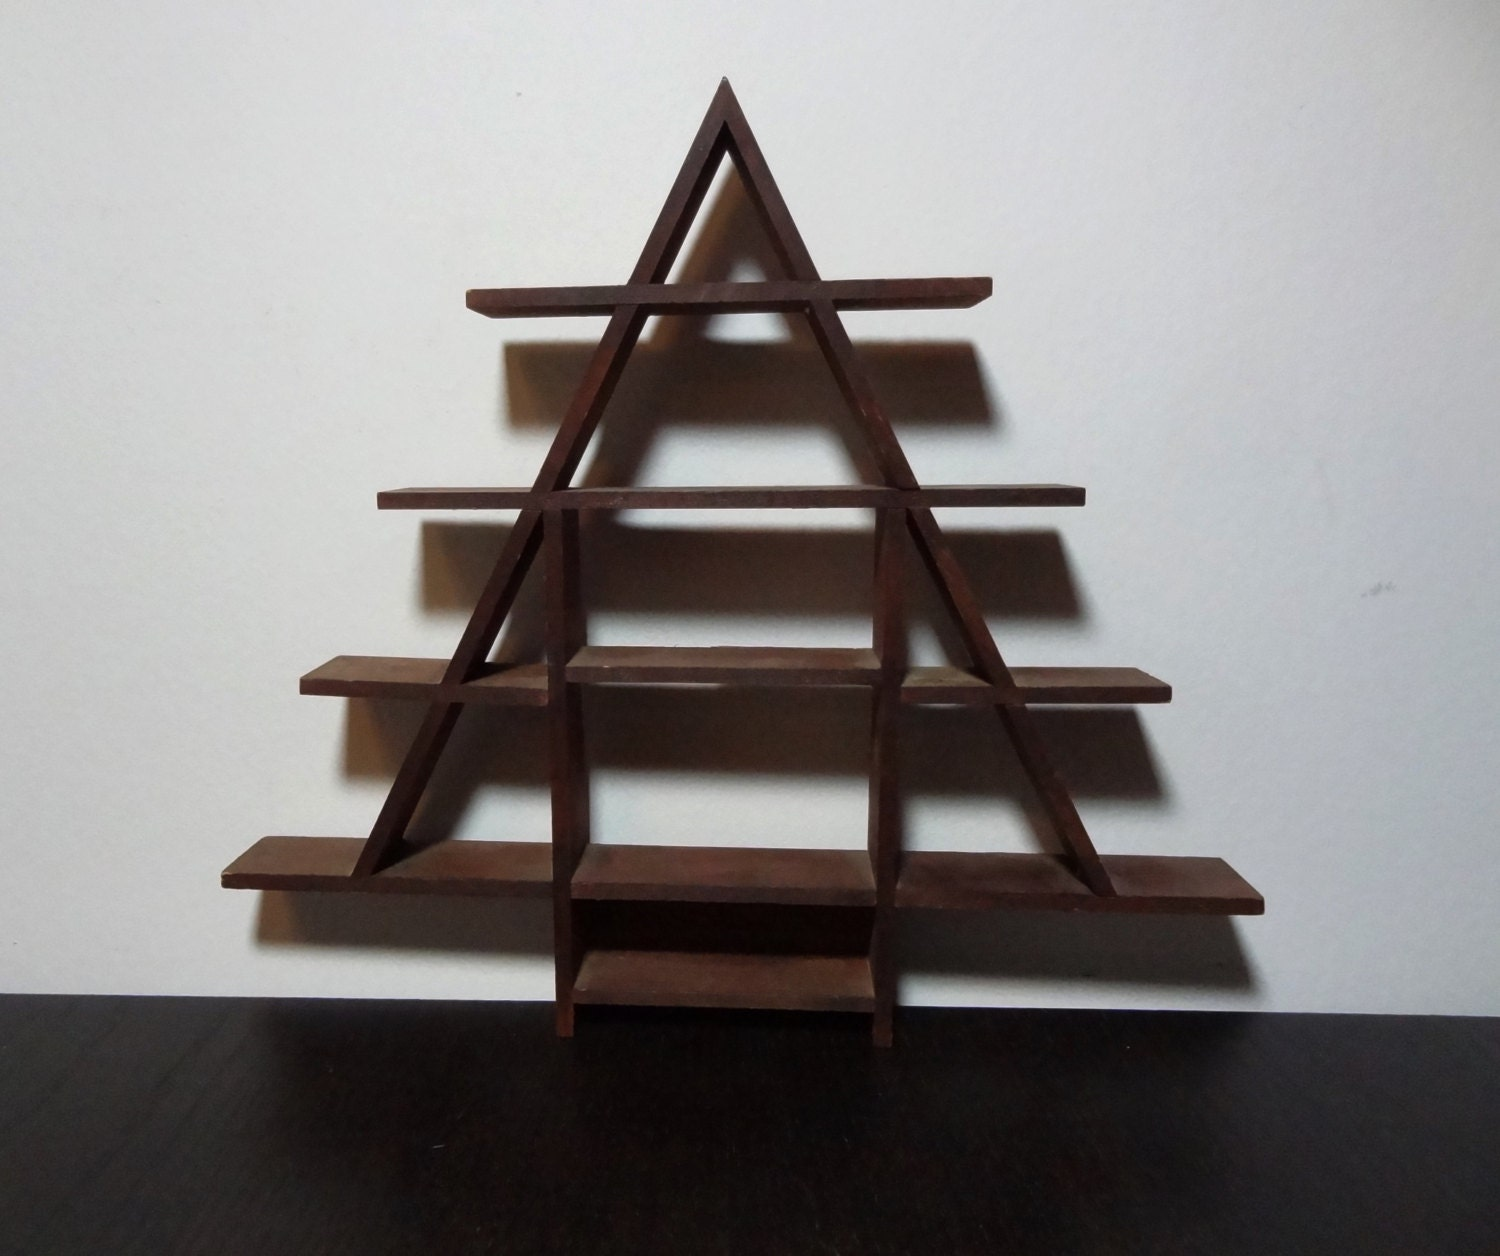 Vintage Wooden Interlocking Christmas Tree Display Shelf For